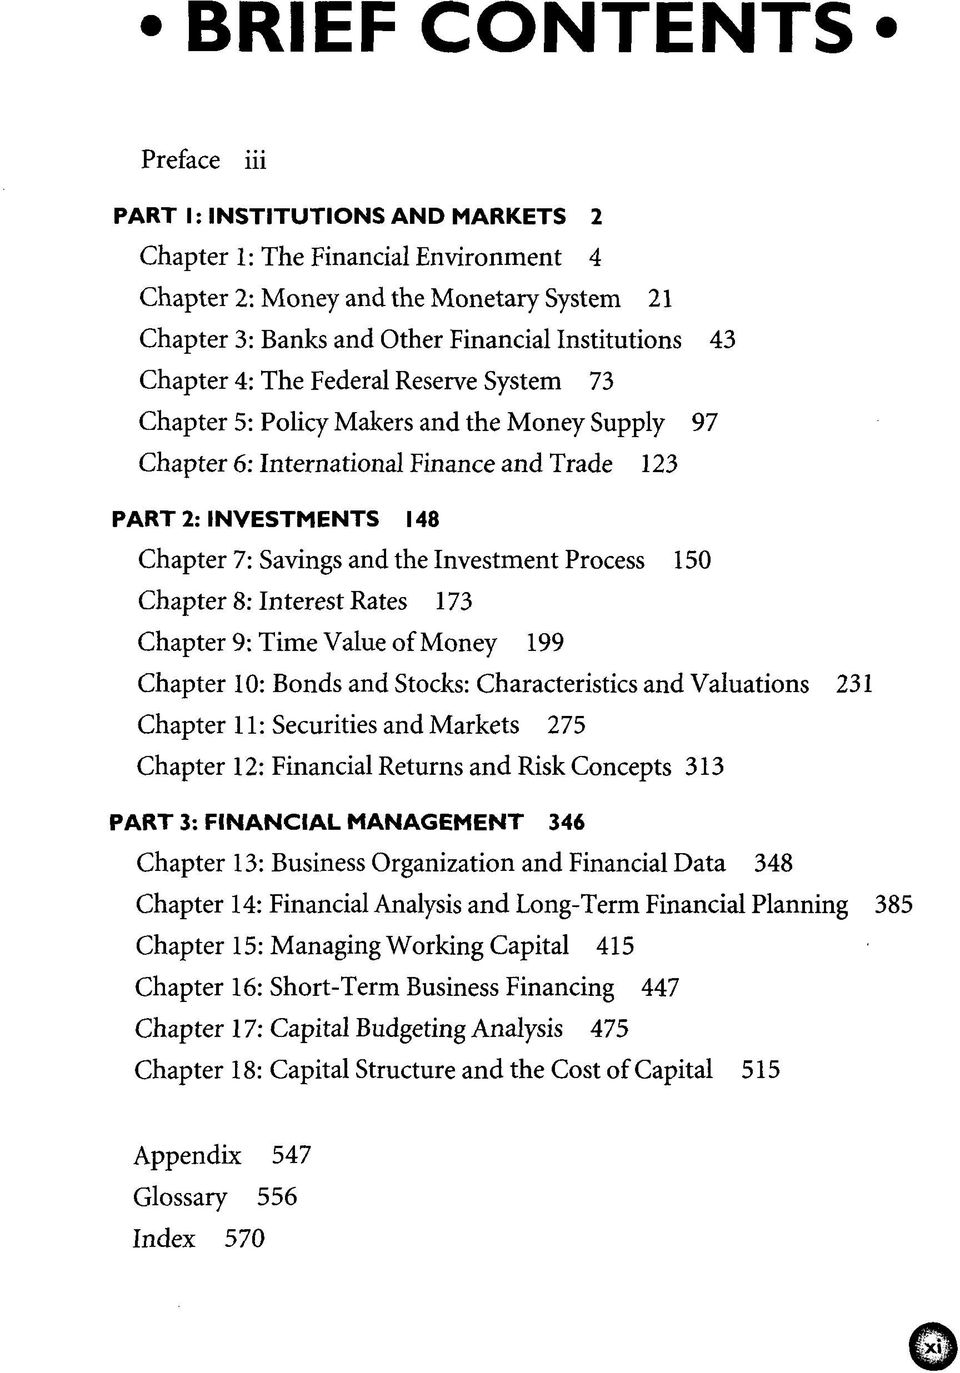 Process 150 Chapter 8: Interest Rates 173 Chapter 9: Time Value of Money 199 Chapter 10: Bonds and Stocks: Characteristics and Valuations 231 Chapter 11: Securities and Markets 275 Chapter 12: